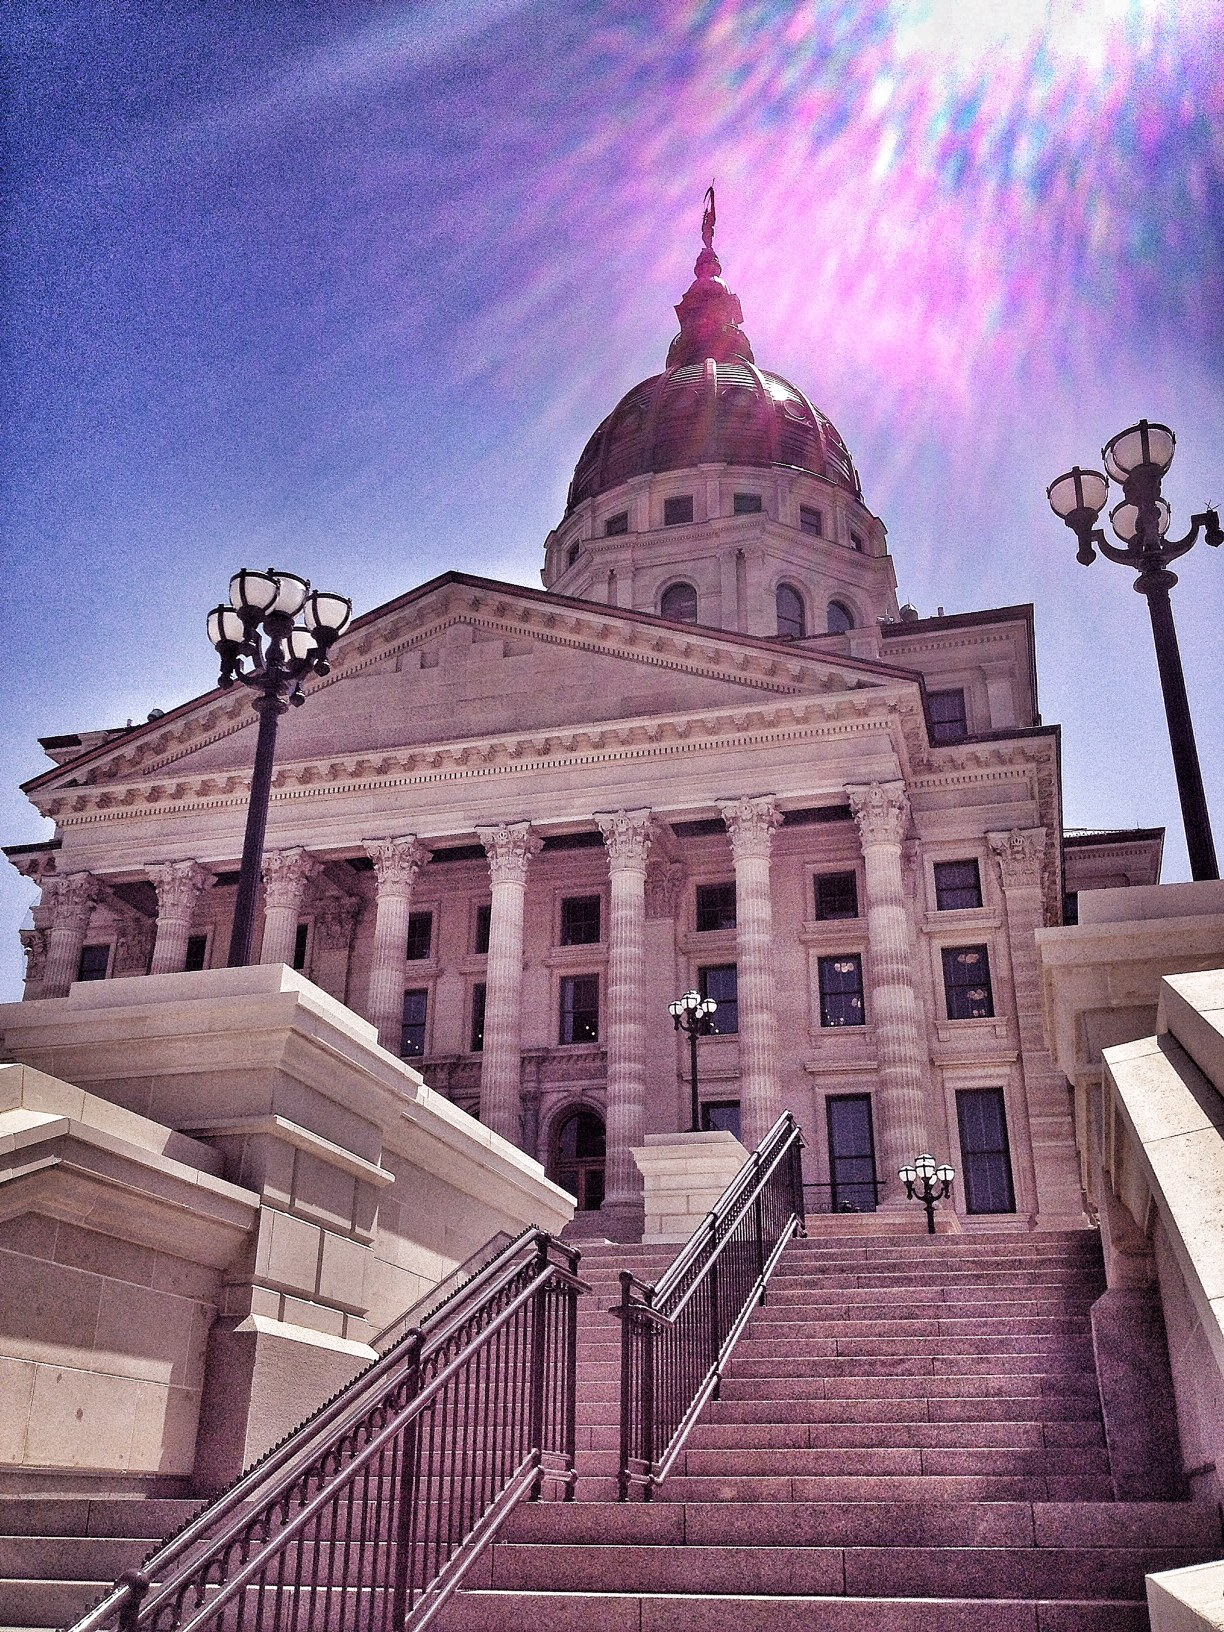 Sunlight hits the shiny, new copper dome on top of the Kansas Statehouse. (Photo by J. Schafer)